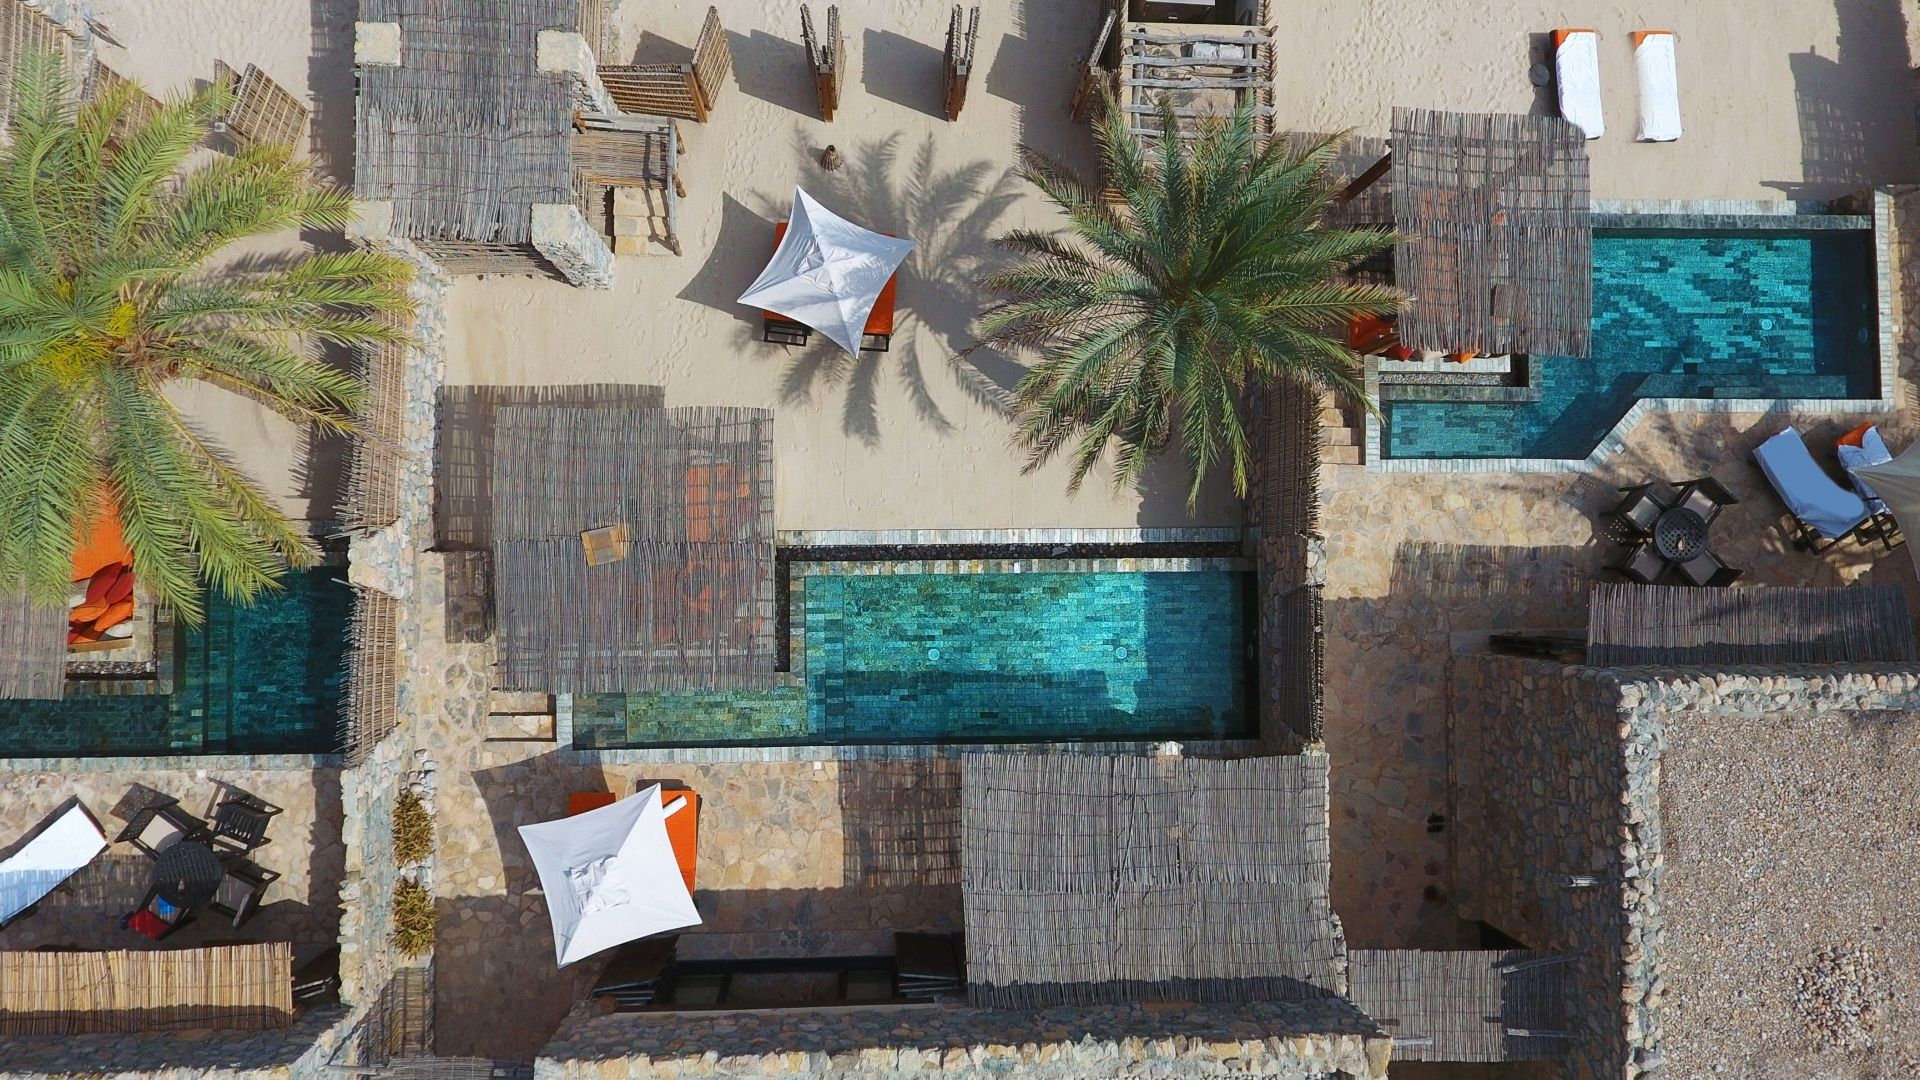 Pool Villa Suites from above